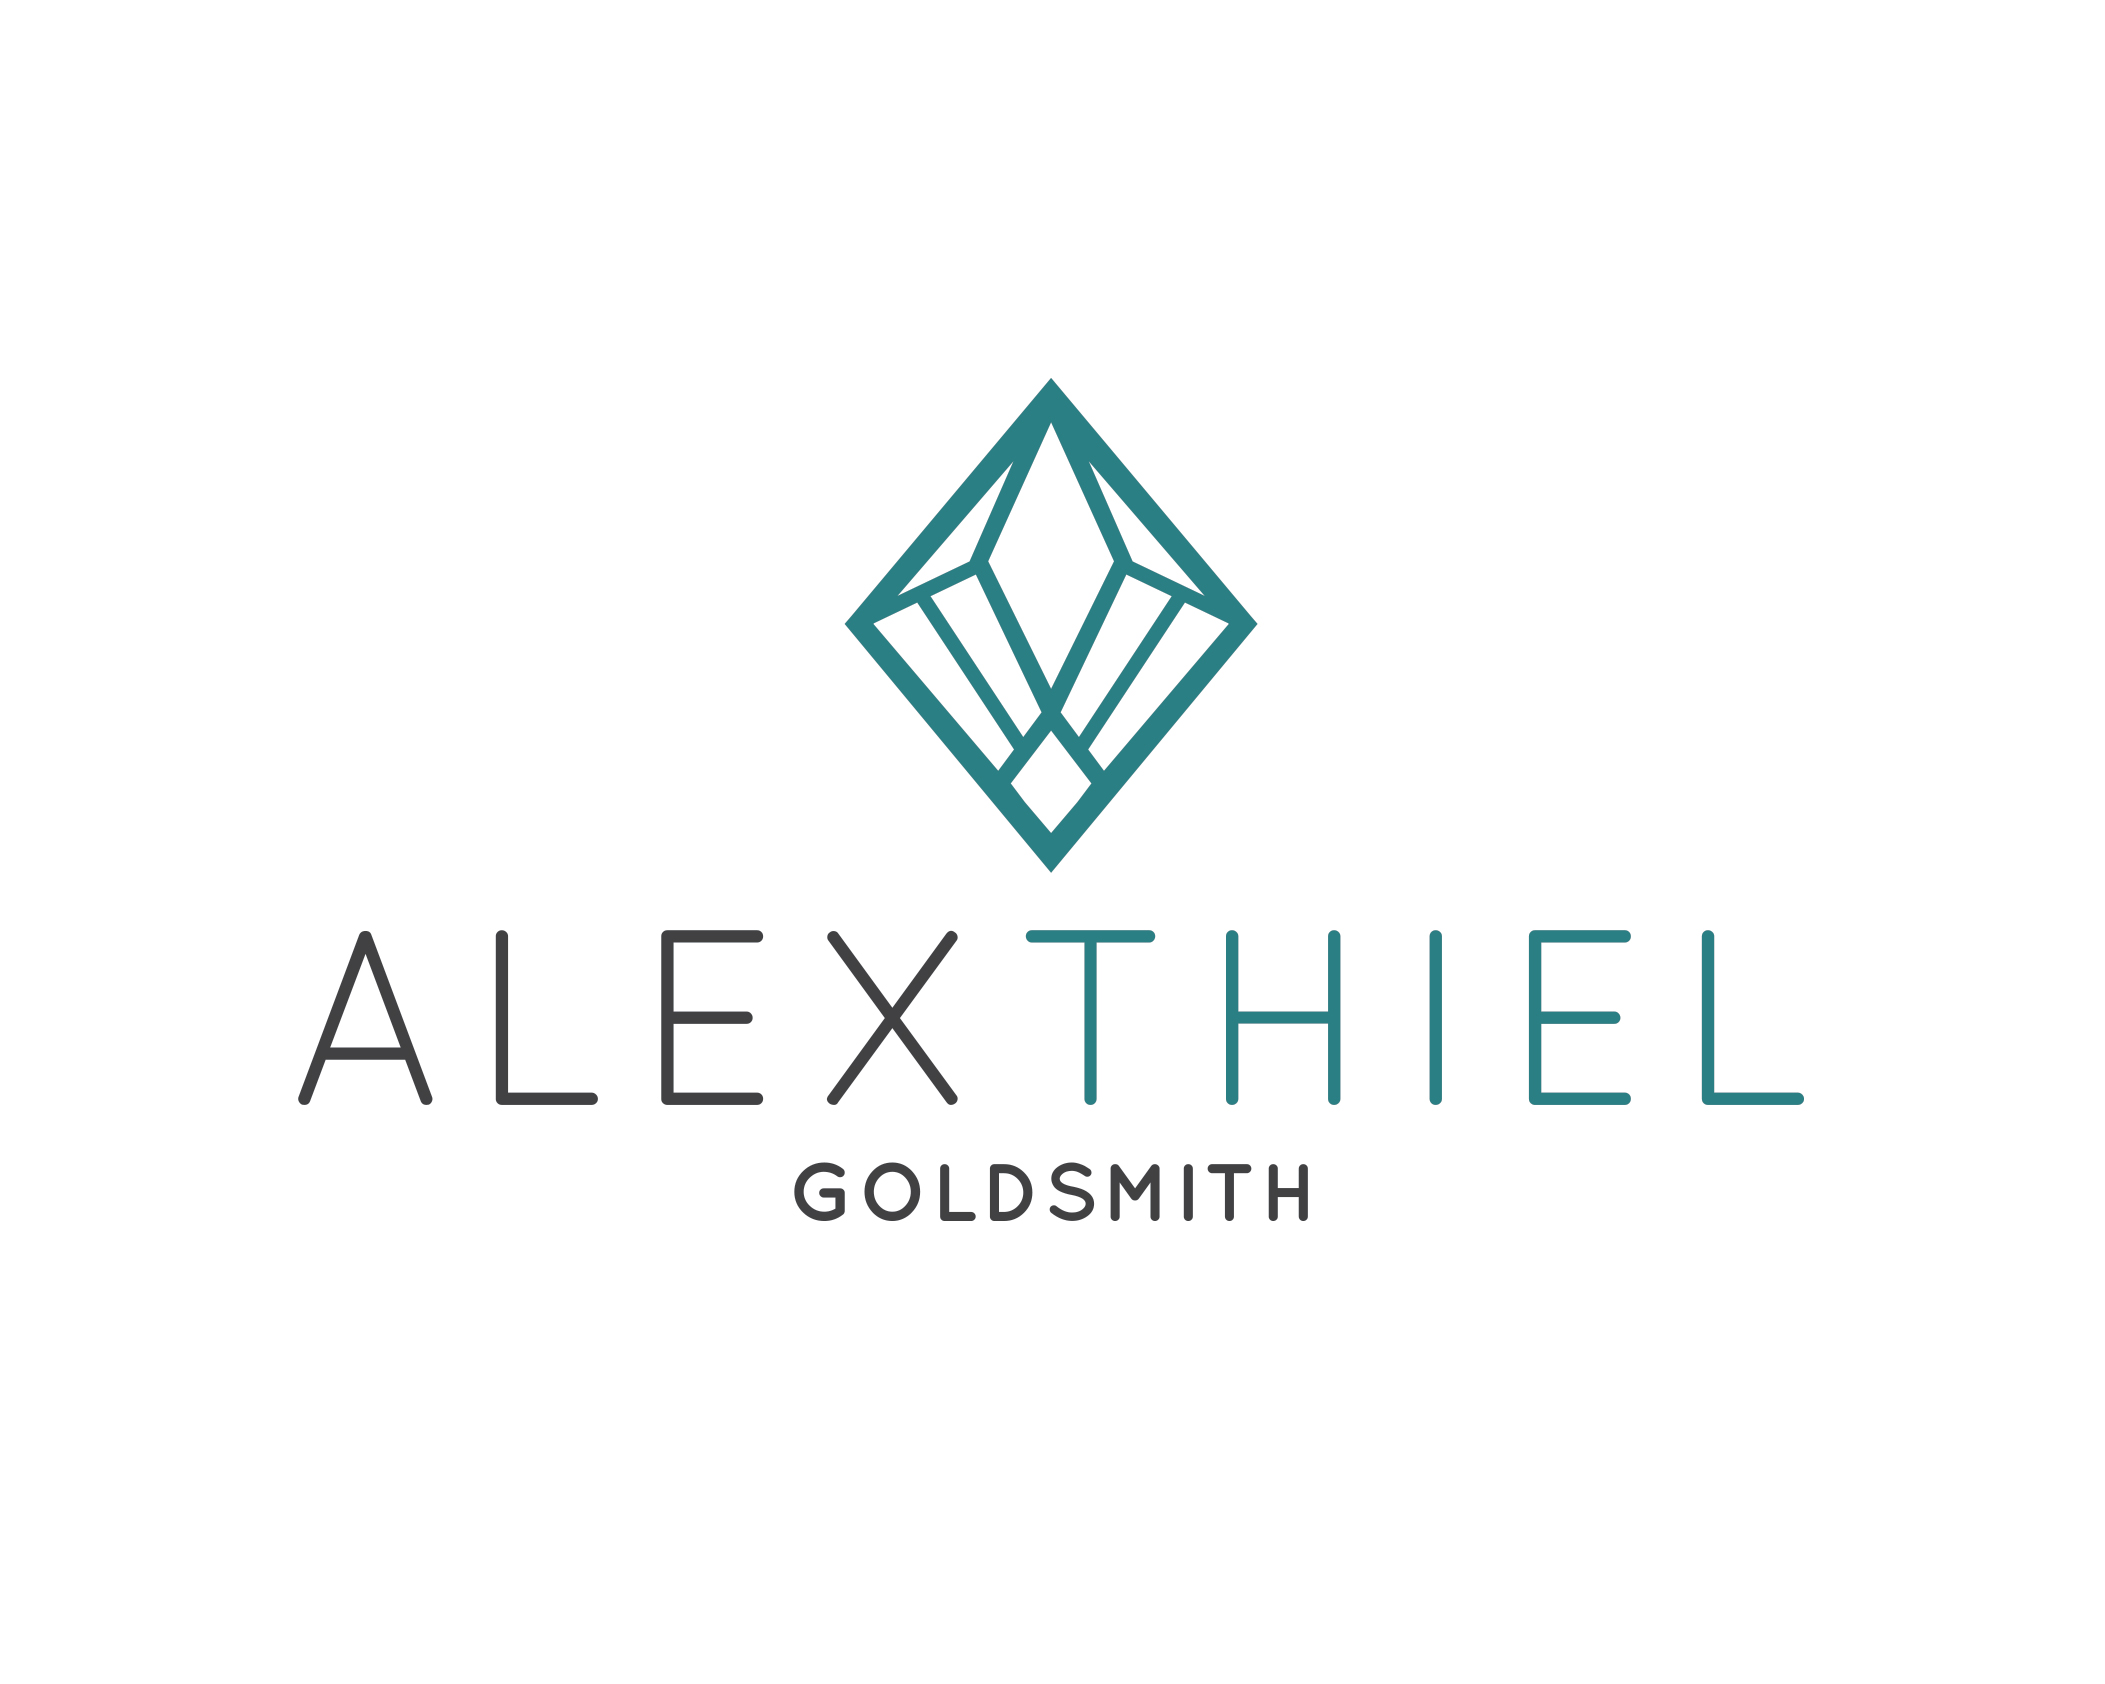 Jewelley designer Cork Ireland Alex Thiel Design